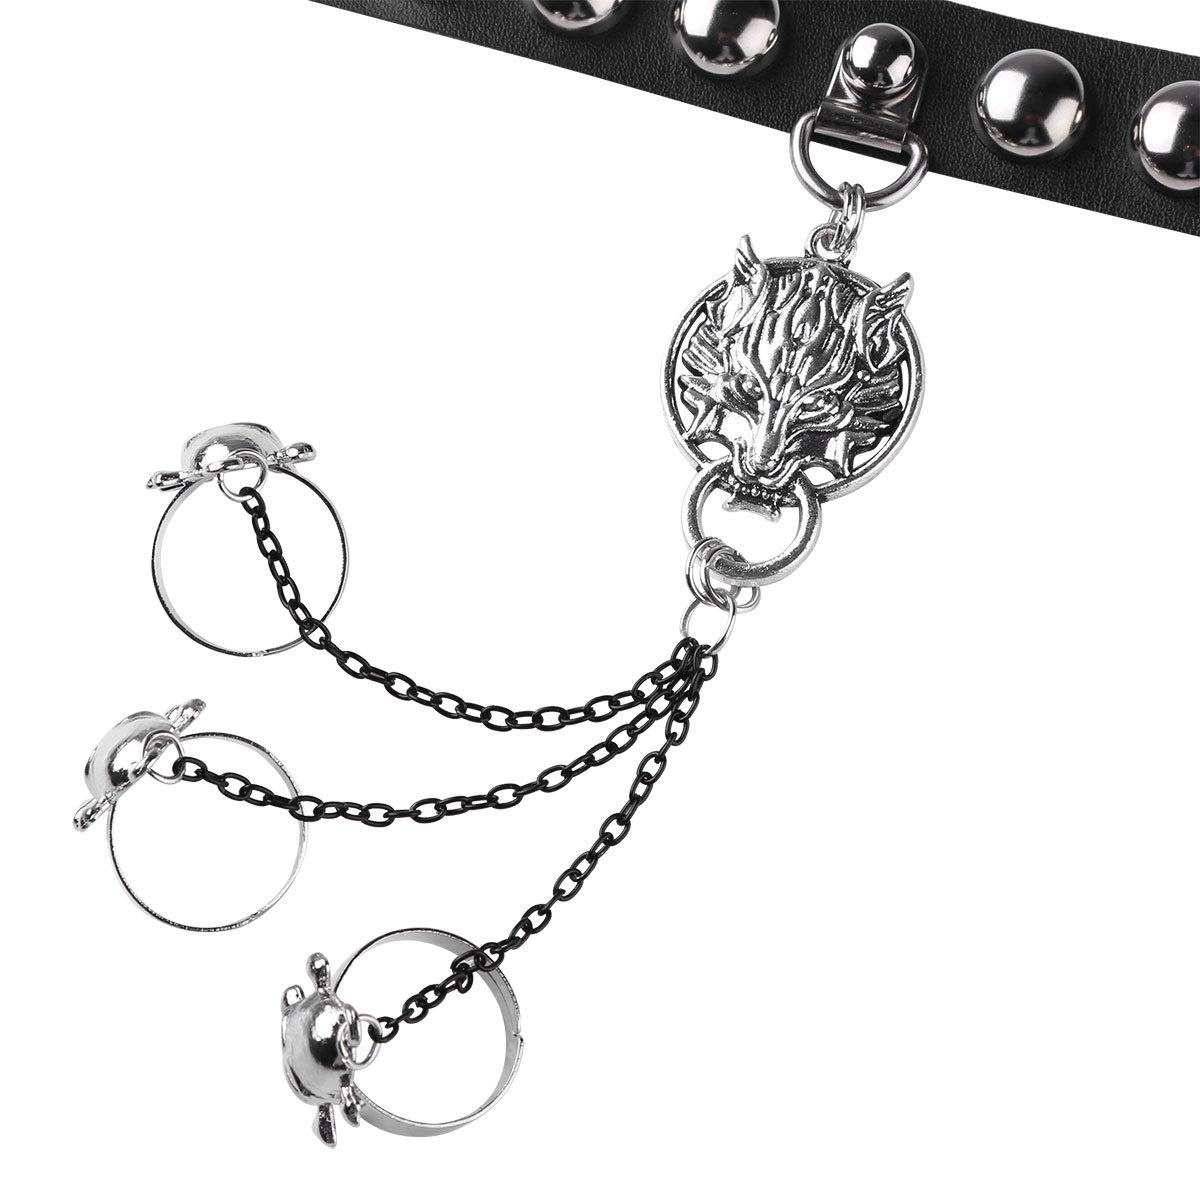 FEESHOW Gothic Faux Leather Steampunk Skull Wolf Head Charm Hand Chain Harness Slave Bracelet Wristband with Rings